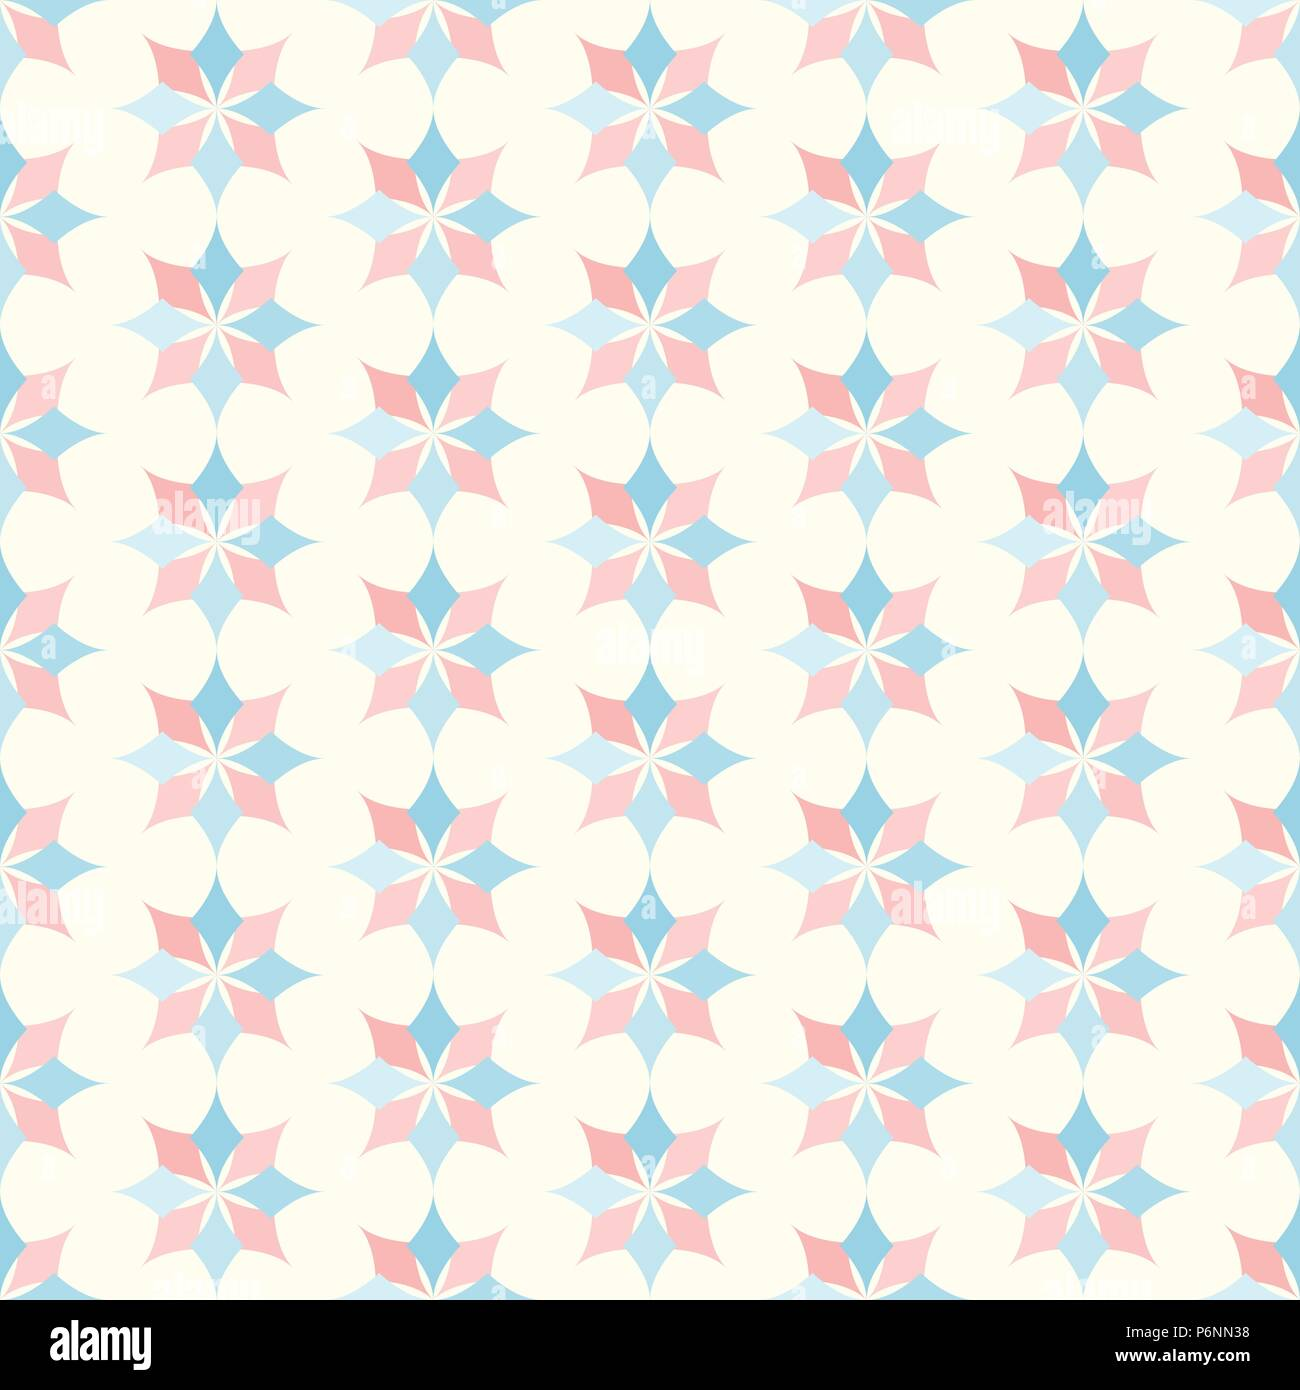 Light Pink and Blue modern classic bloom seamless pattern. Abstract blossom style for graphic and retro design. - Stock Vector